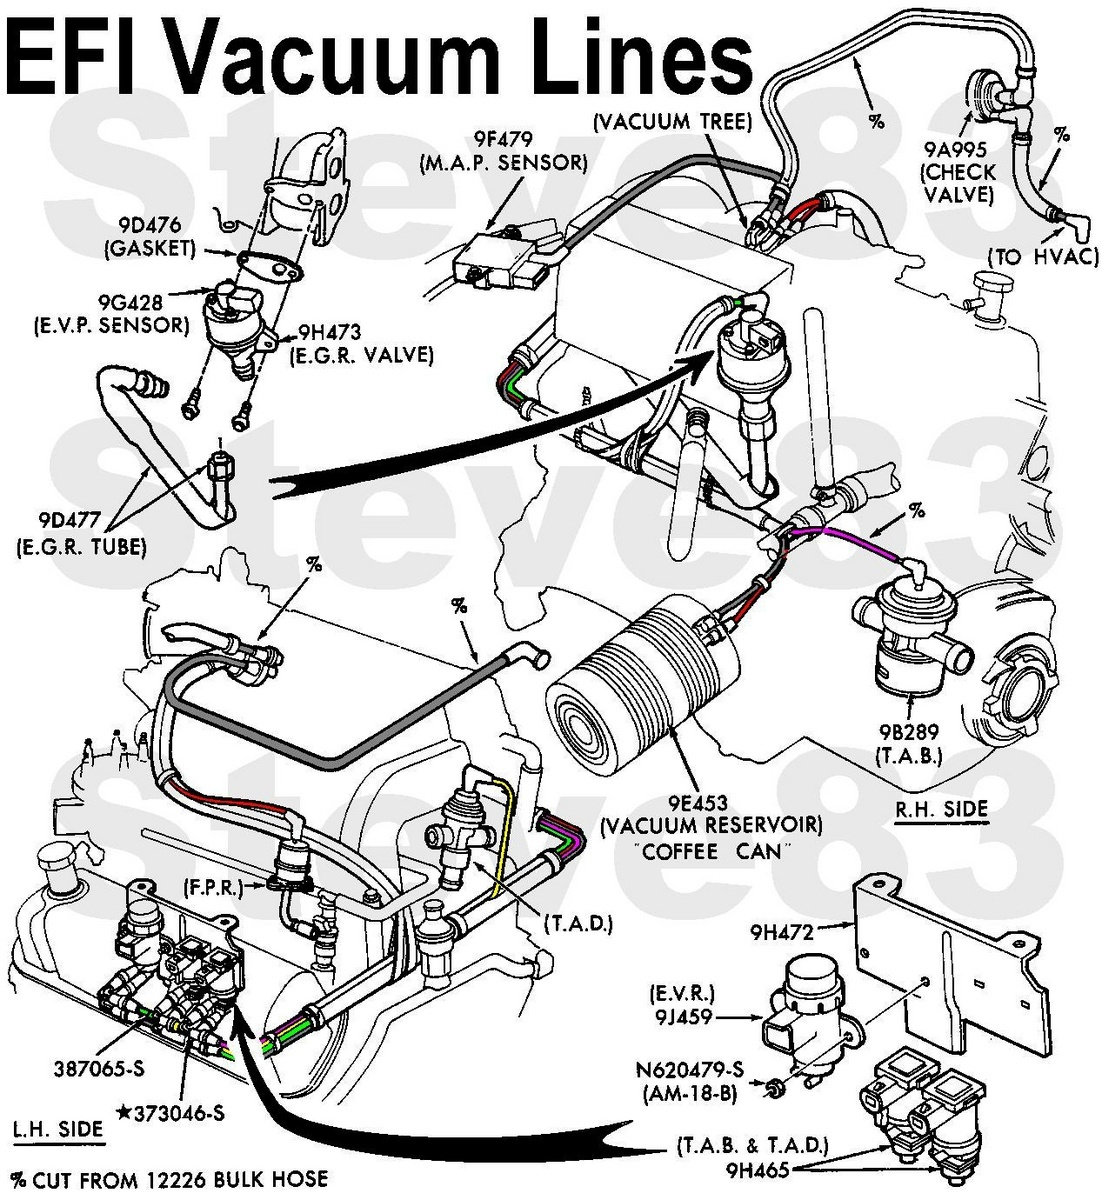 Engine Diagram For A 1994 Chevy Silverado 5 7 Liter besides 331406417232 further 2004 Silverado Wiring Schematics also Showthread further Discussion T42311 ds610988. on 2000 chevy silverado 1500 wiring diagram